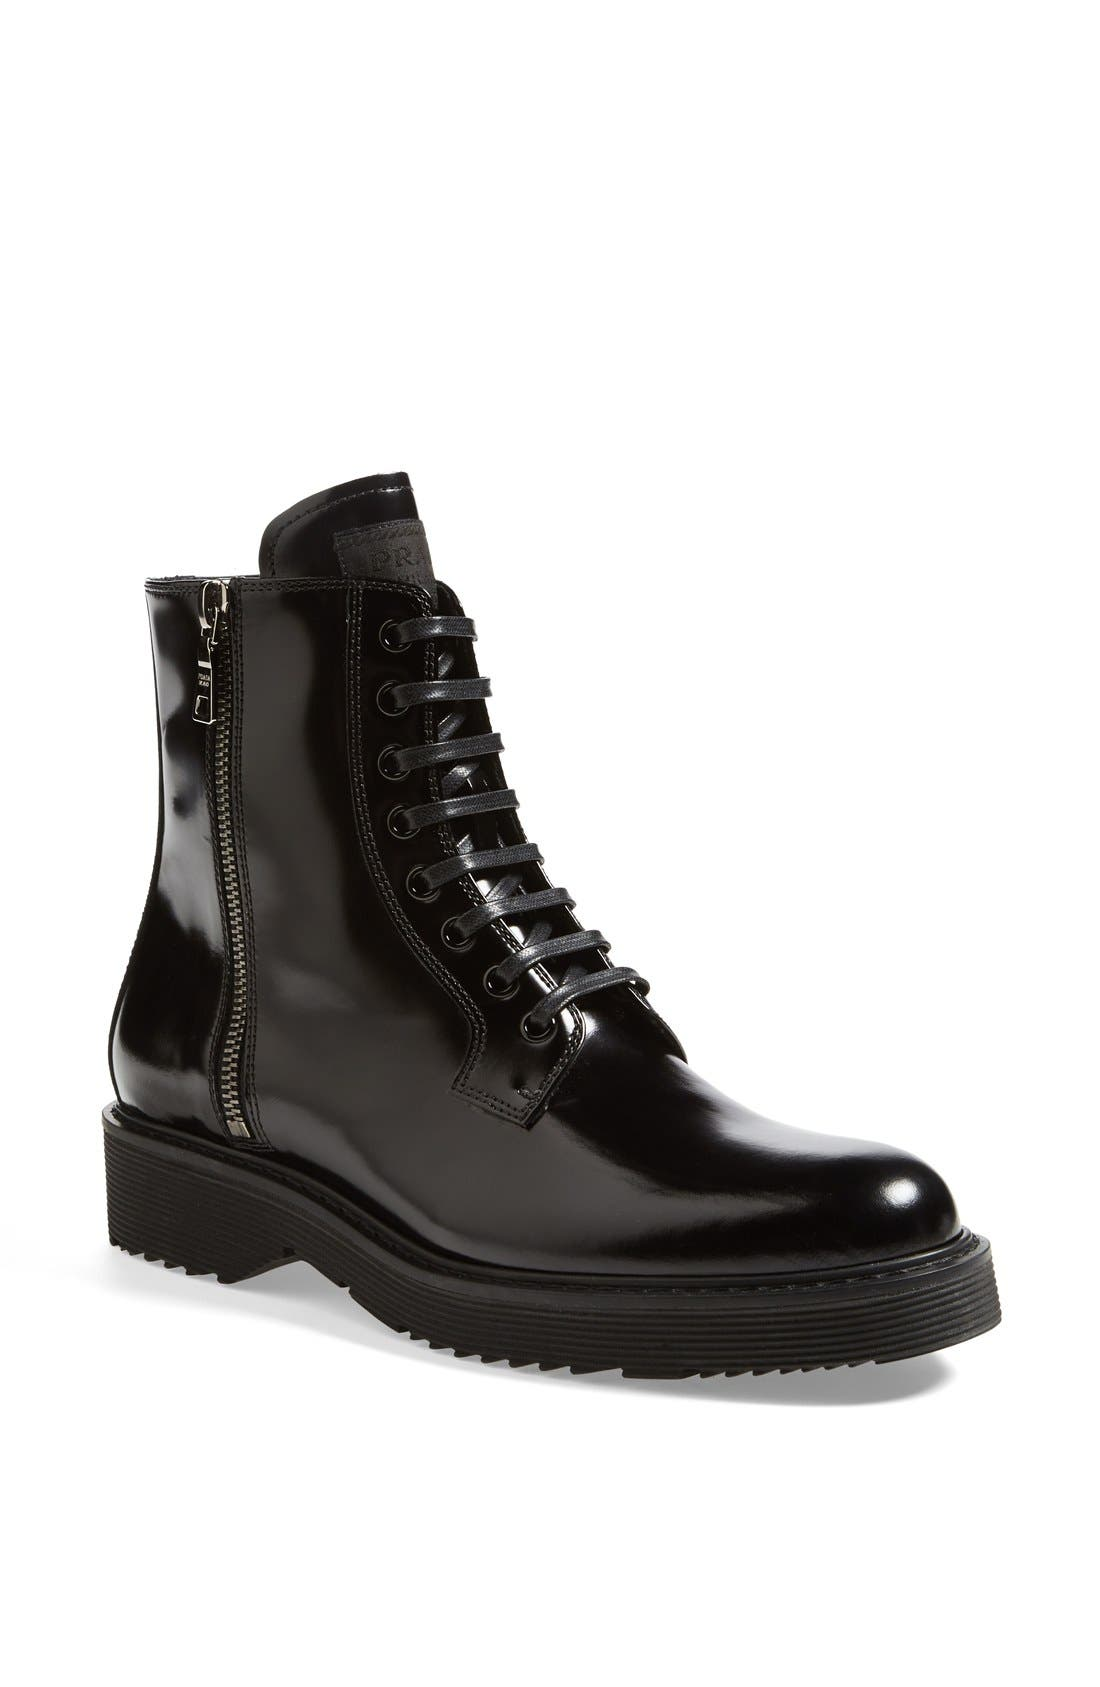 Alternate Image 1 Selected - Prada Lace-Up Short Boot (Women)